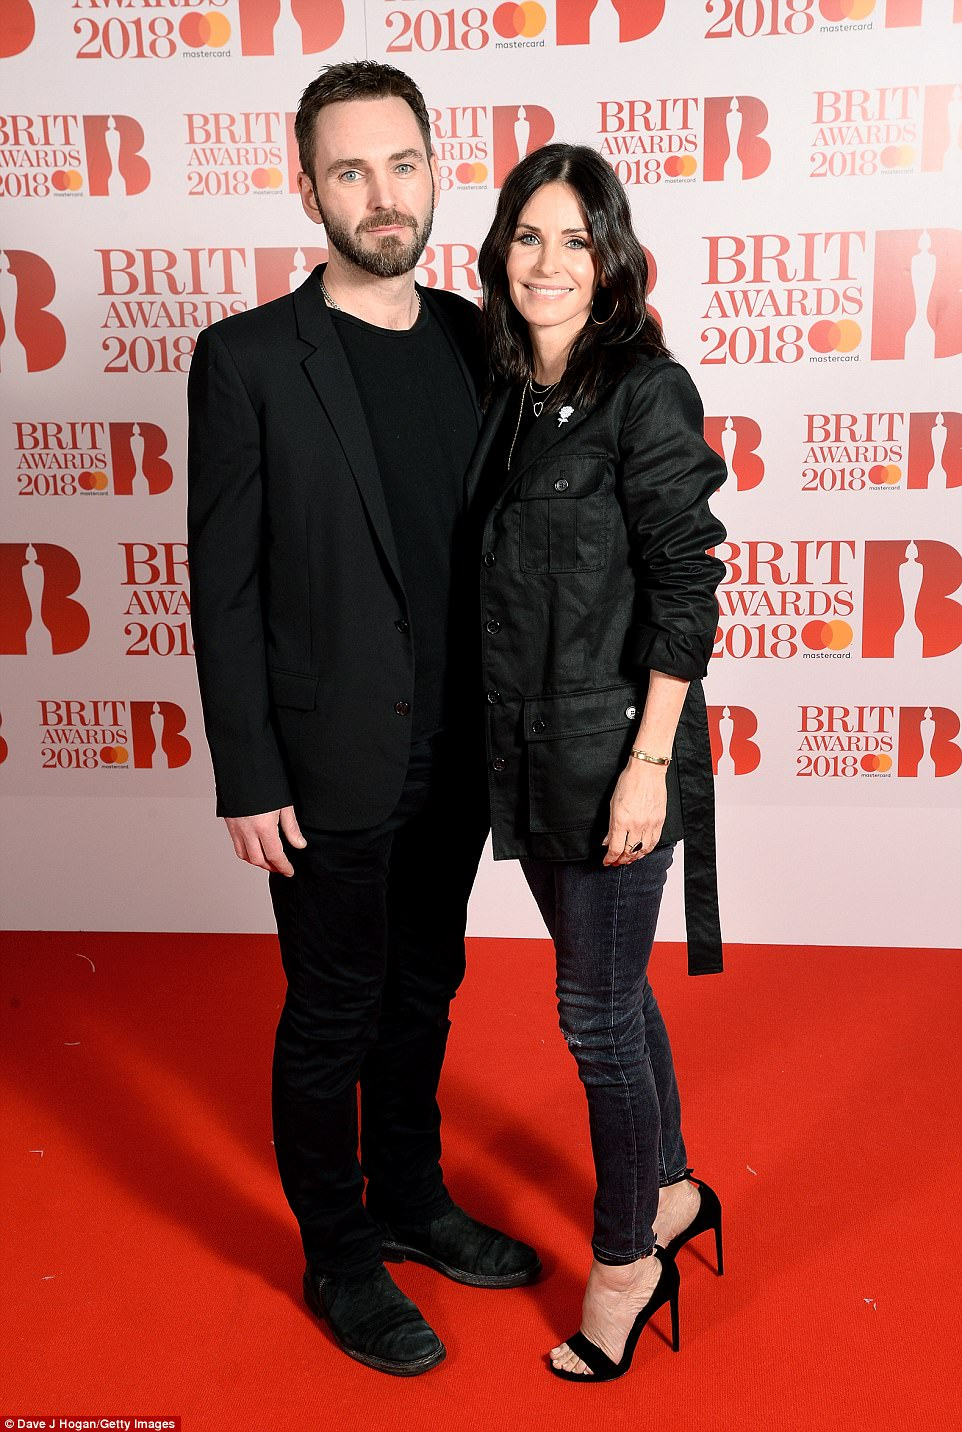 Besotted: Former Friends star Courteney Cox couldn't have looked more happier as she arrived on the arms of her other half Johnny McDaid